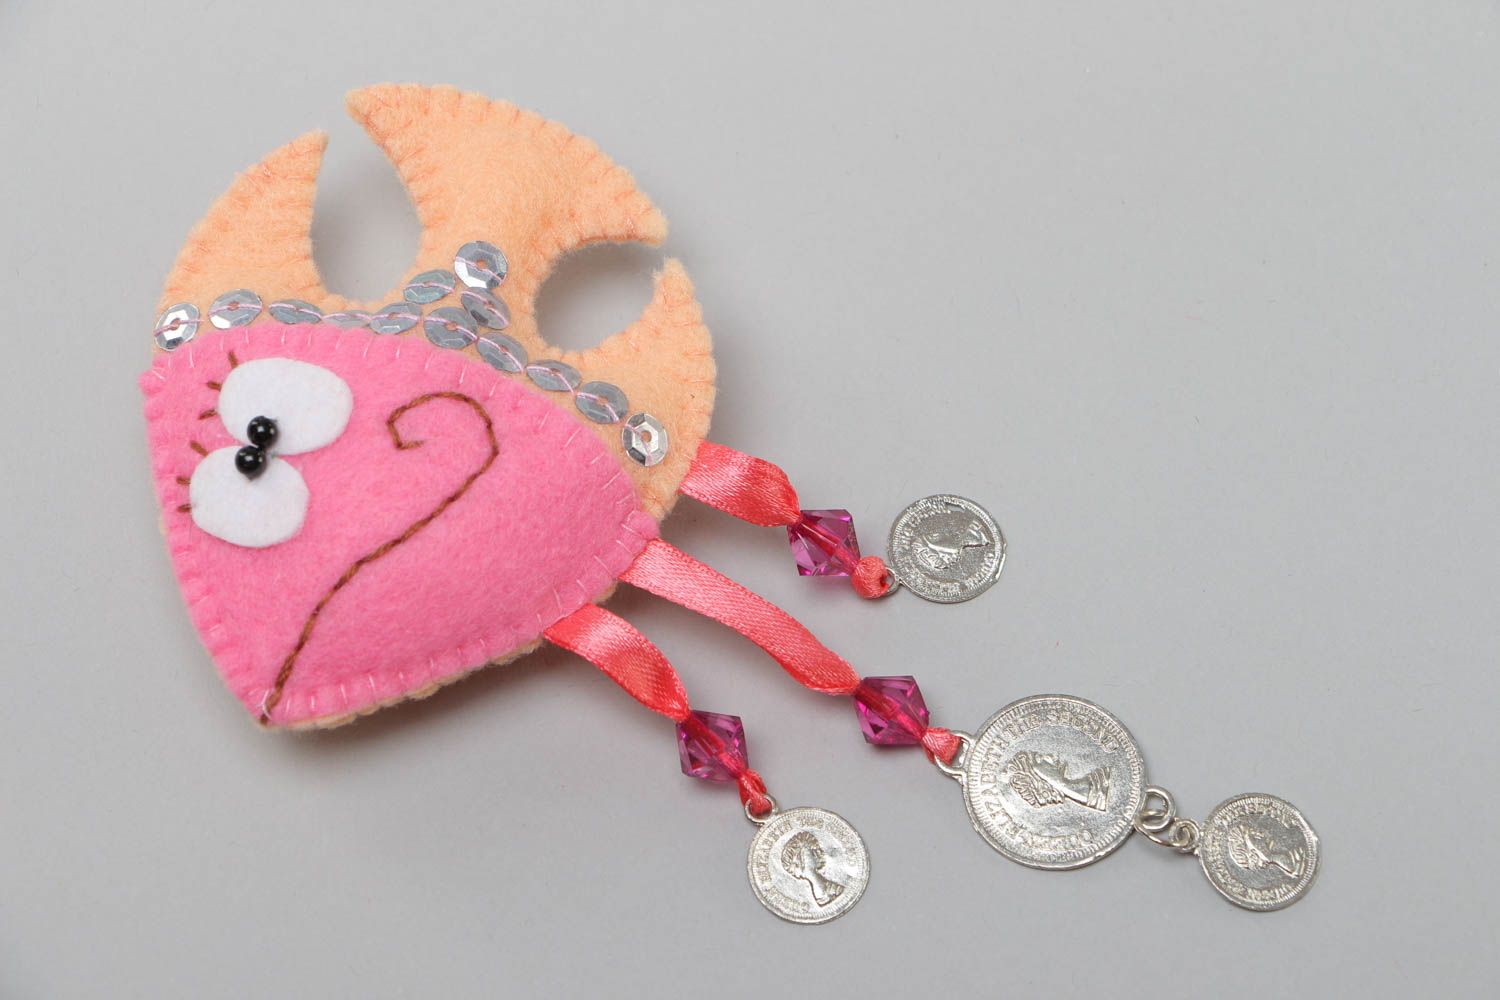 Handmade soft toy fridge magnet sewn of felt with beads and coins charms Fish photo 2